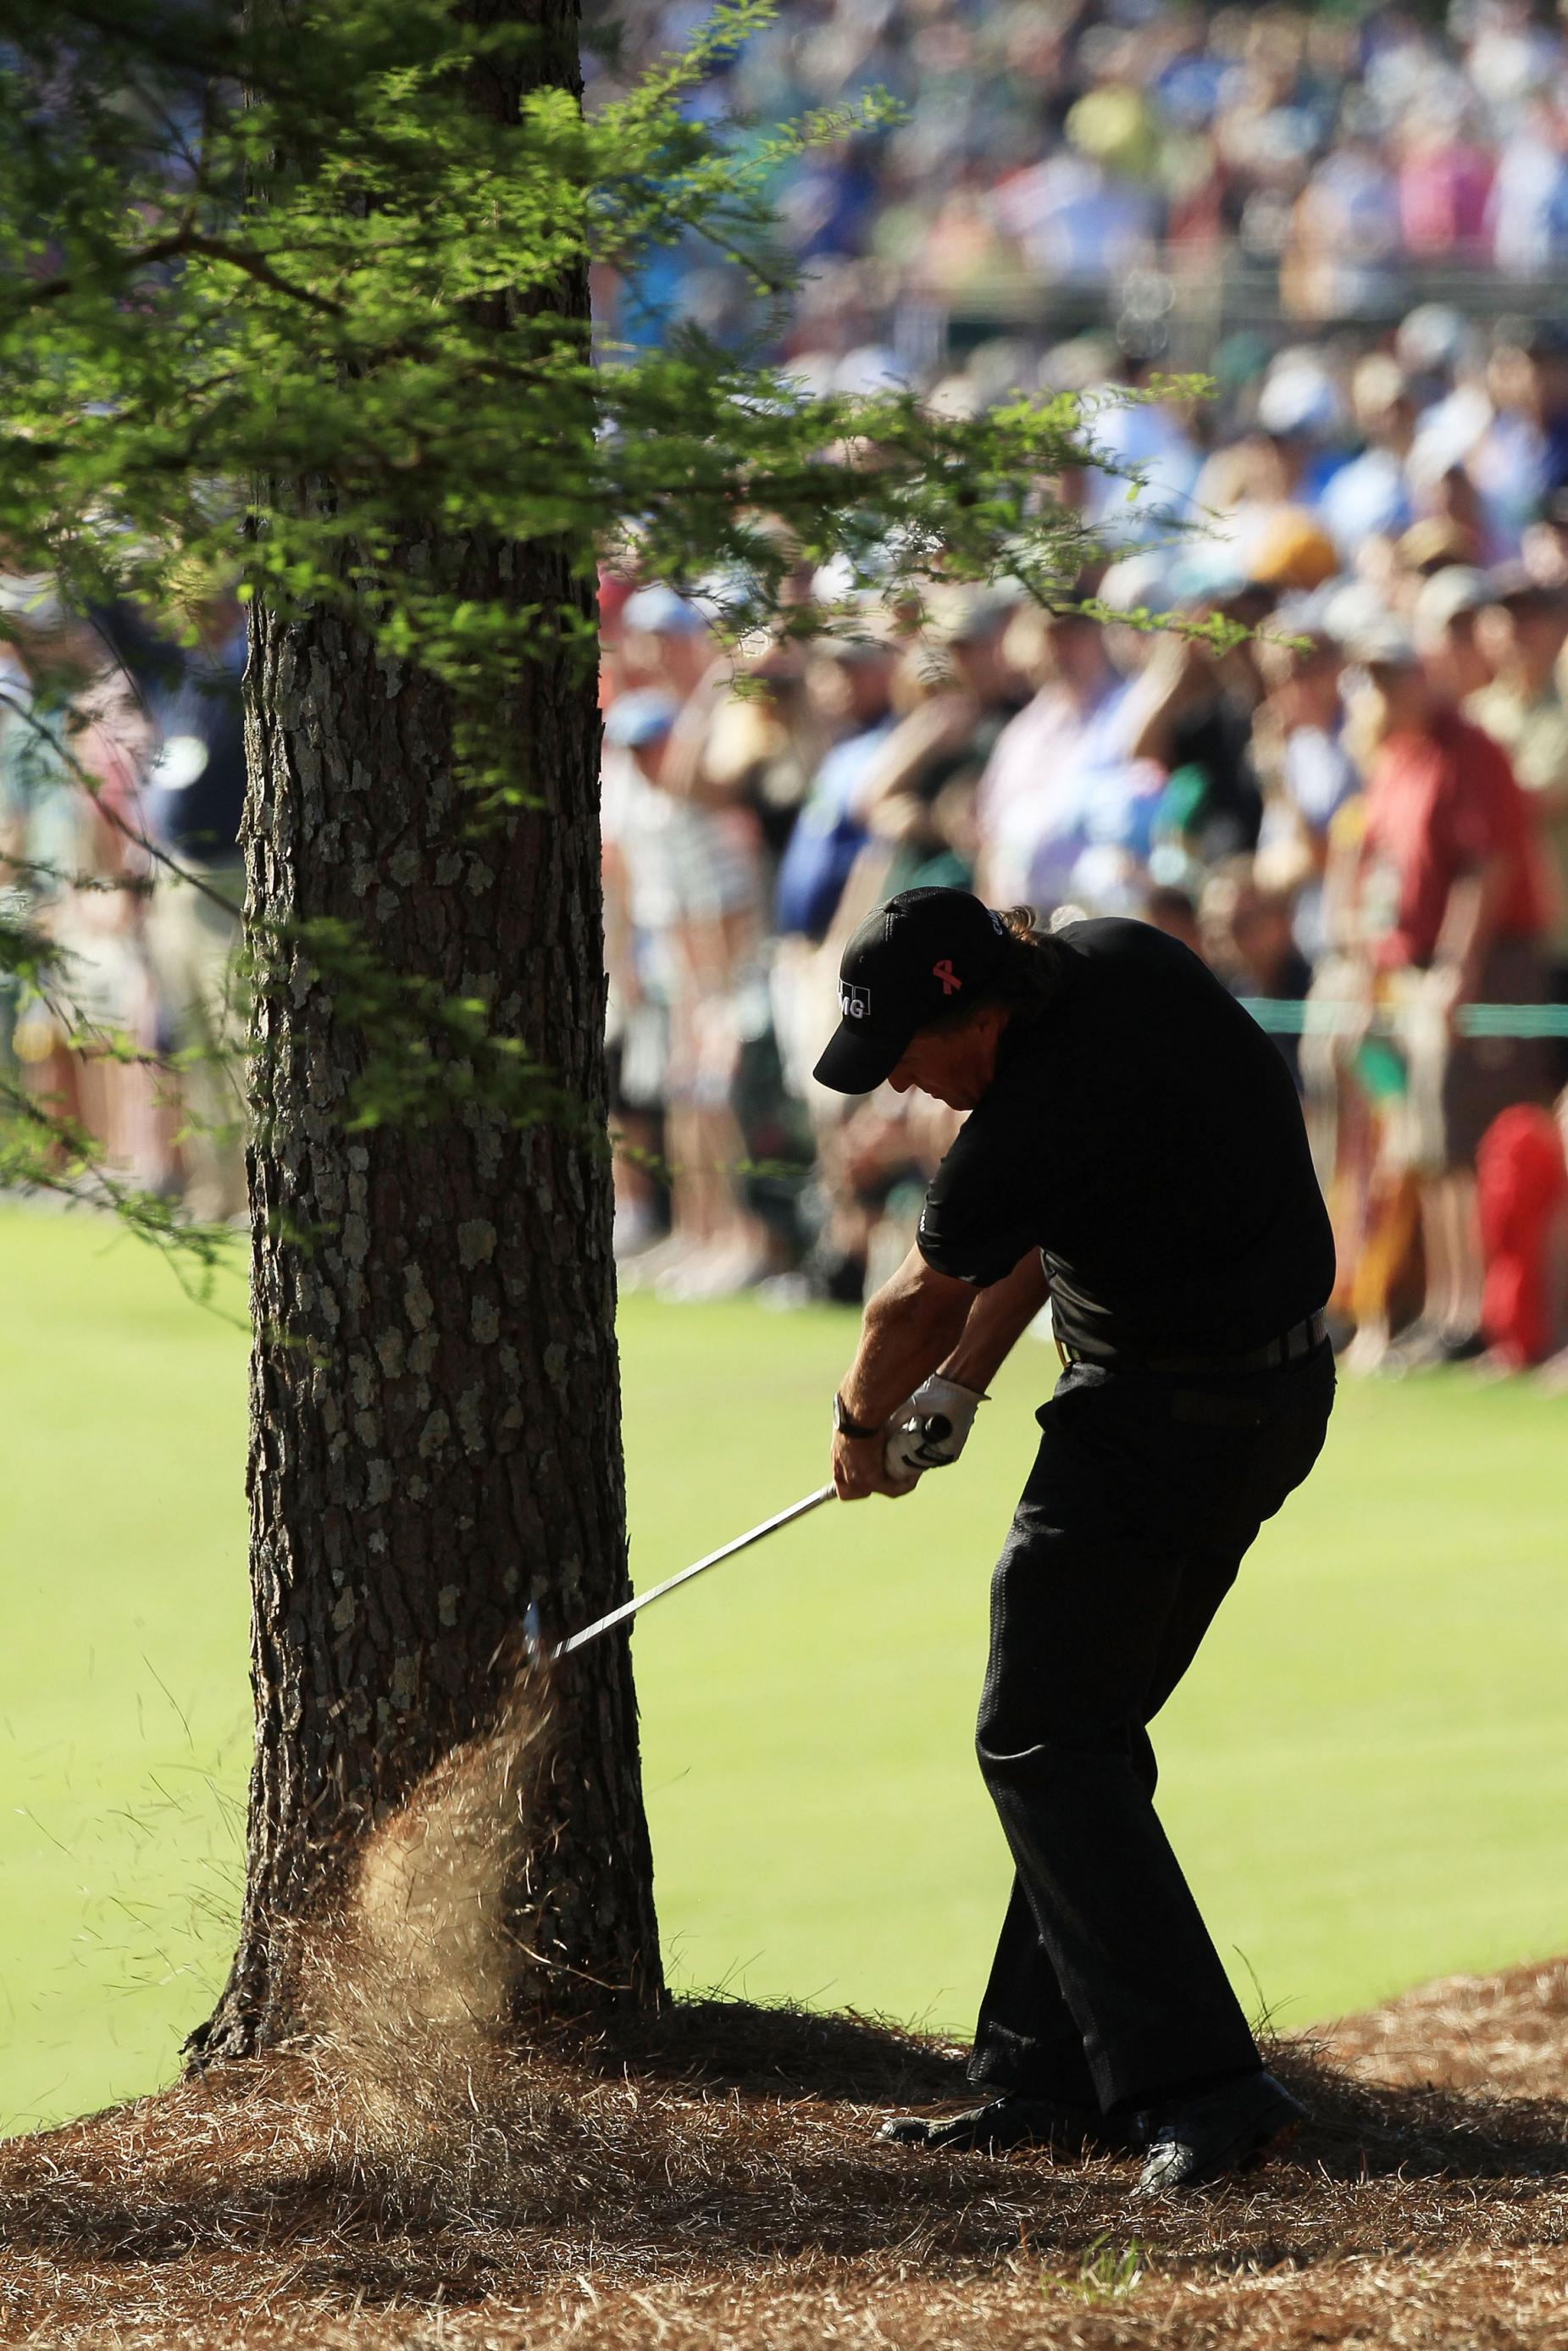 phil-mickelson-2010-masters-13th-hole-pine-straqw.jpg